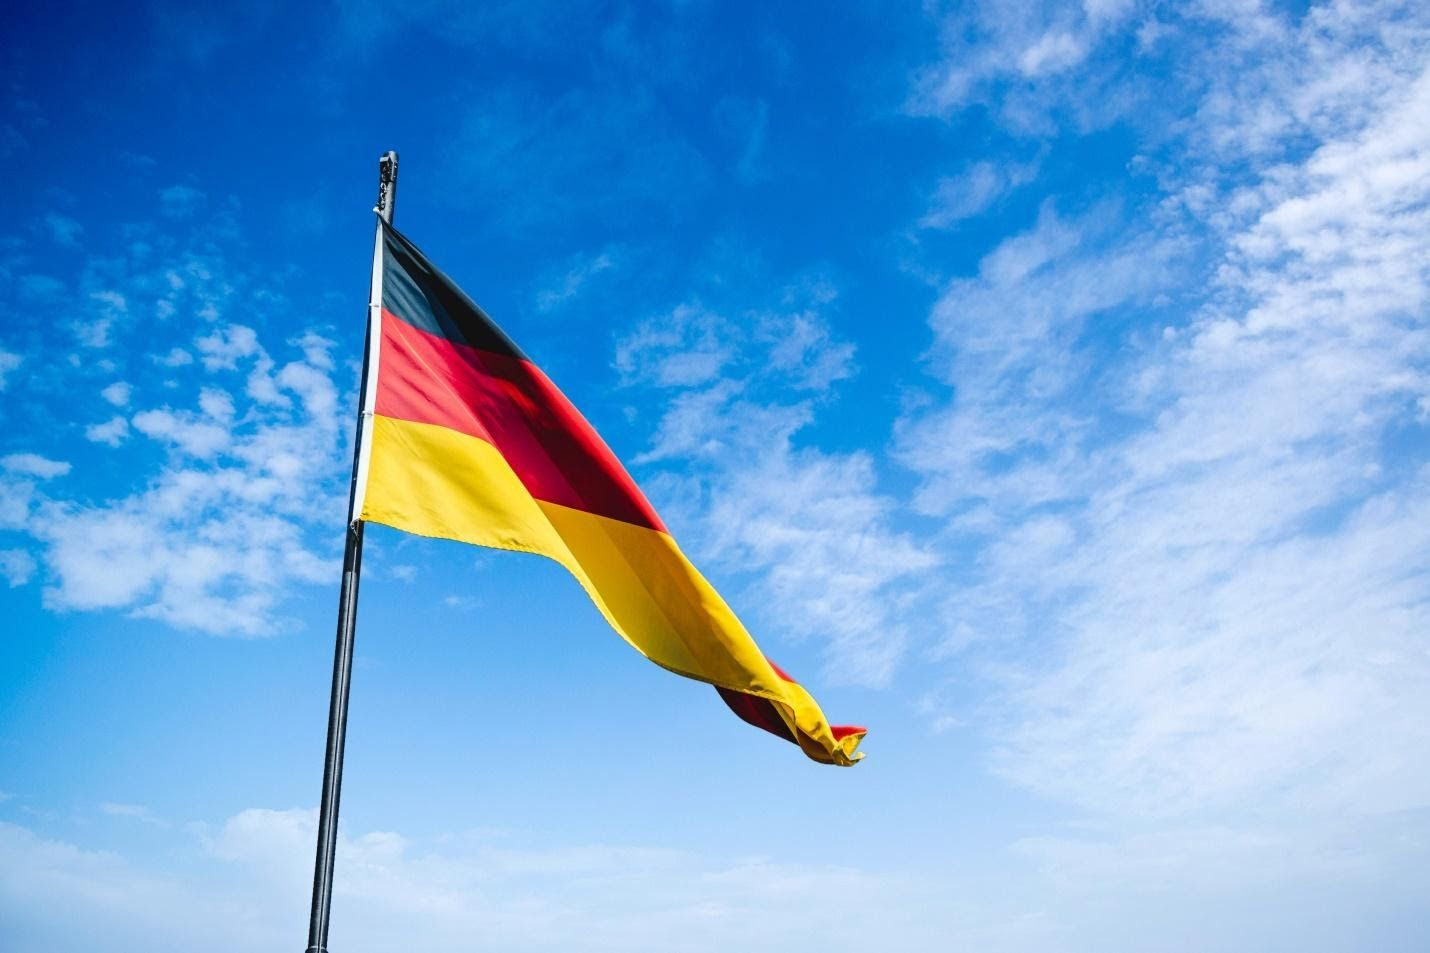 /thinking-of-moving-to-germany-heres-what-to-expect-working-as-a-software-developer-in-germany-645q35m7 feature image